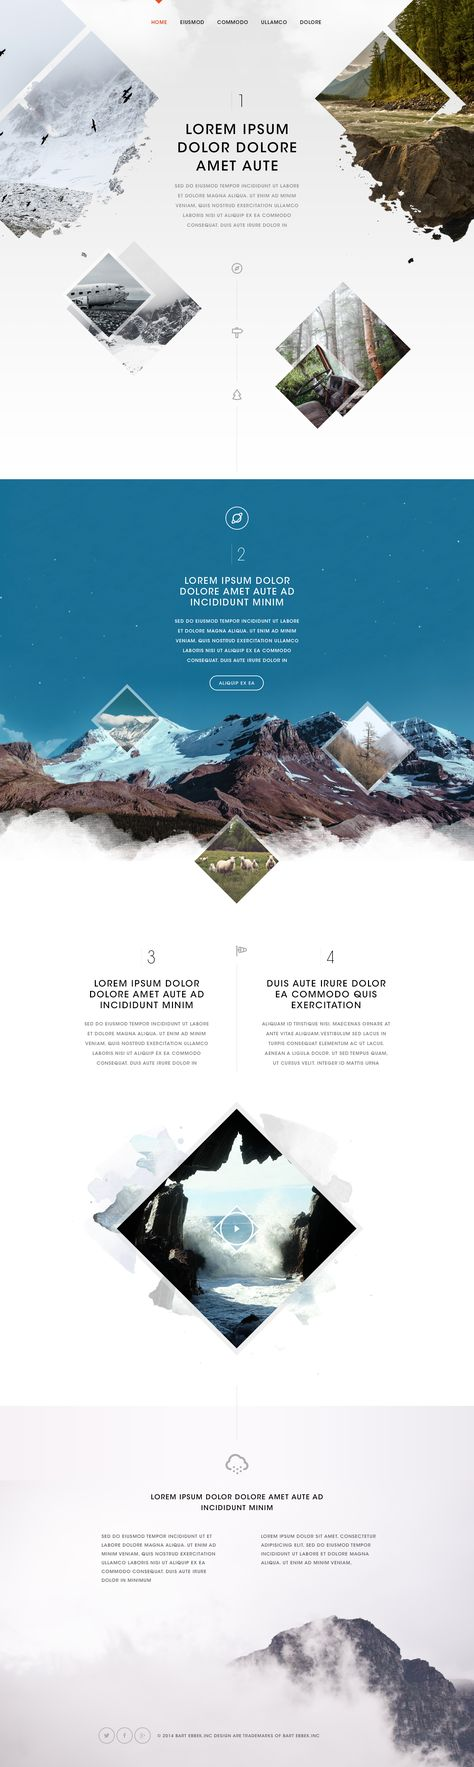 Nature // Hi Friends, look what I just found on #web #design! Make sure to follow us @moirestudiosjkt to see more pins like this | Moire Studios is a thriving website and graphic design studio based in Jakarta, Indonesia.